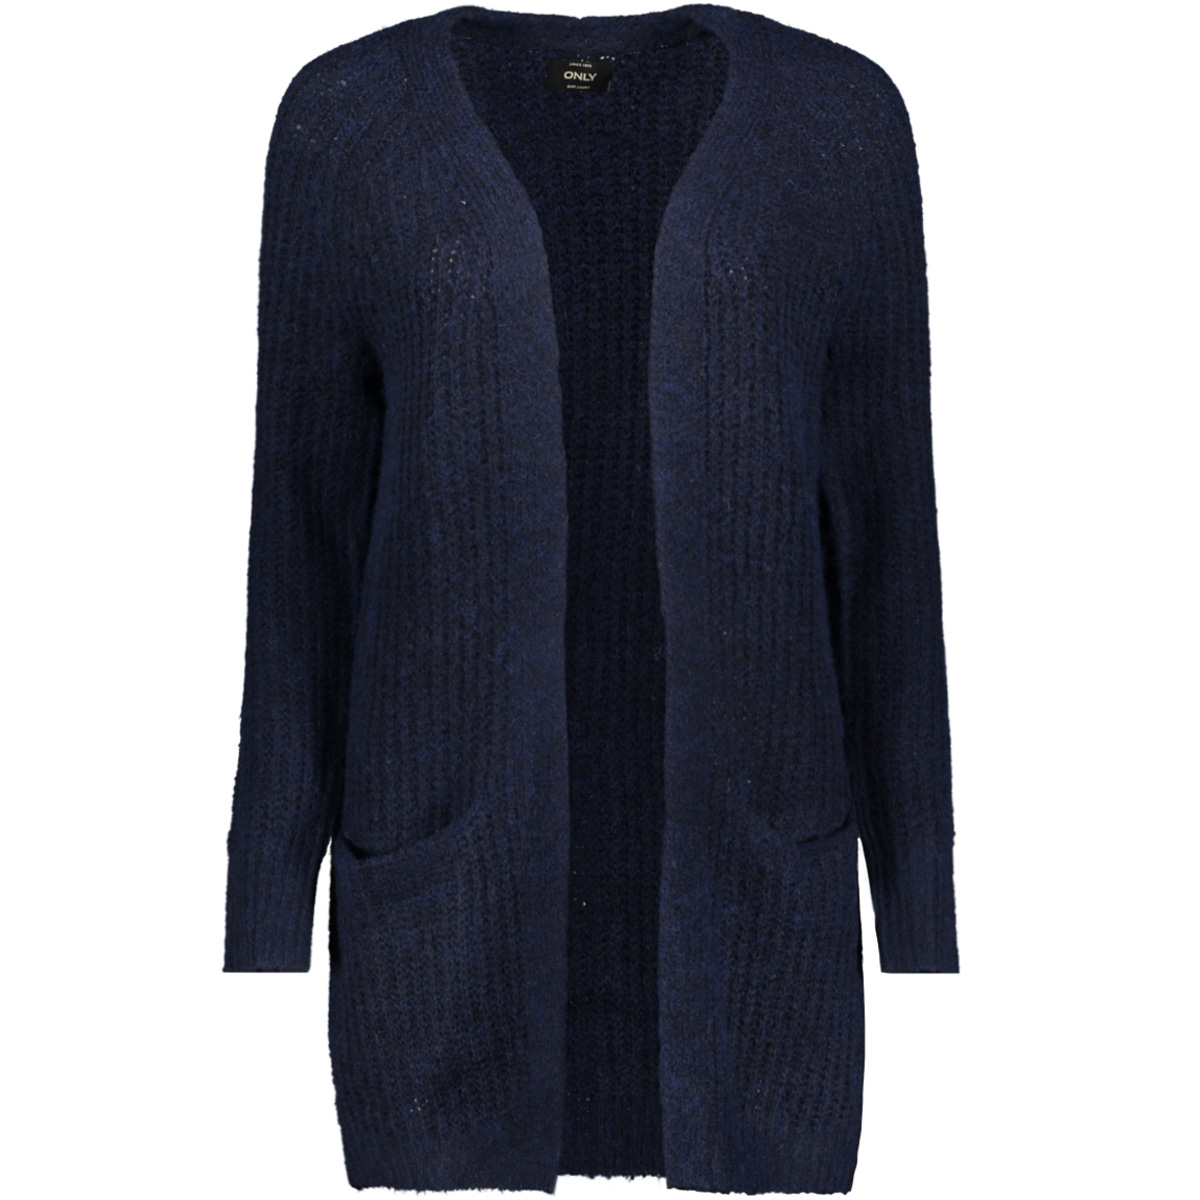 onlvega l/s cardigan knt 15160729 only vest night sky